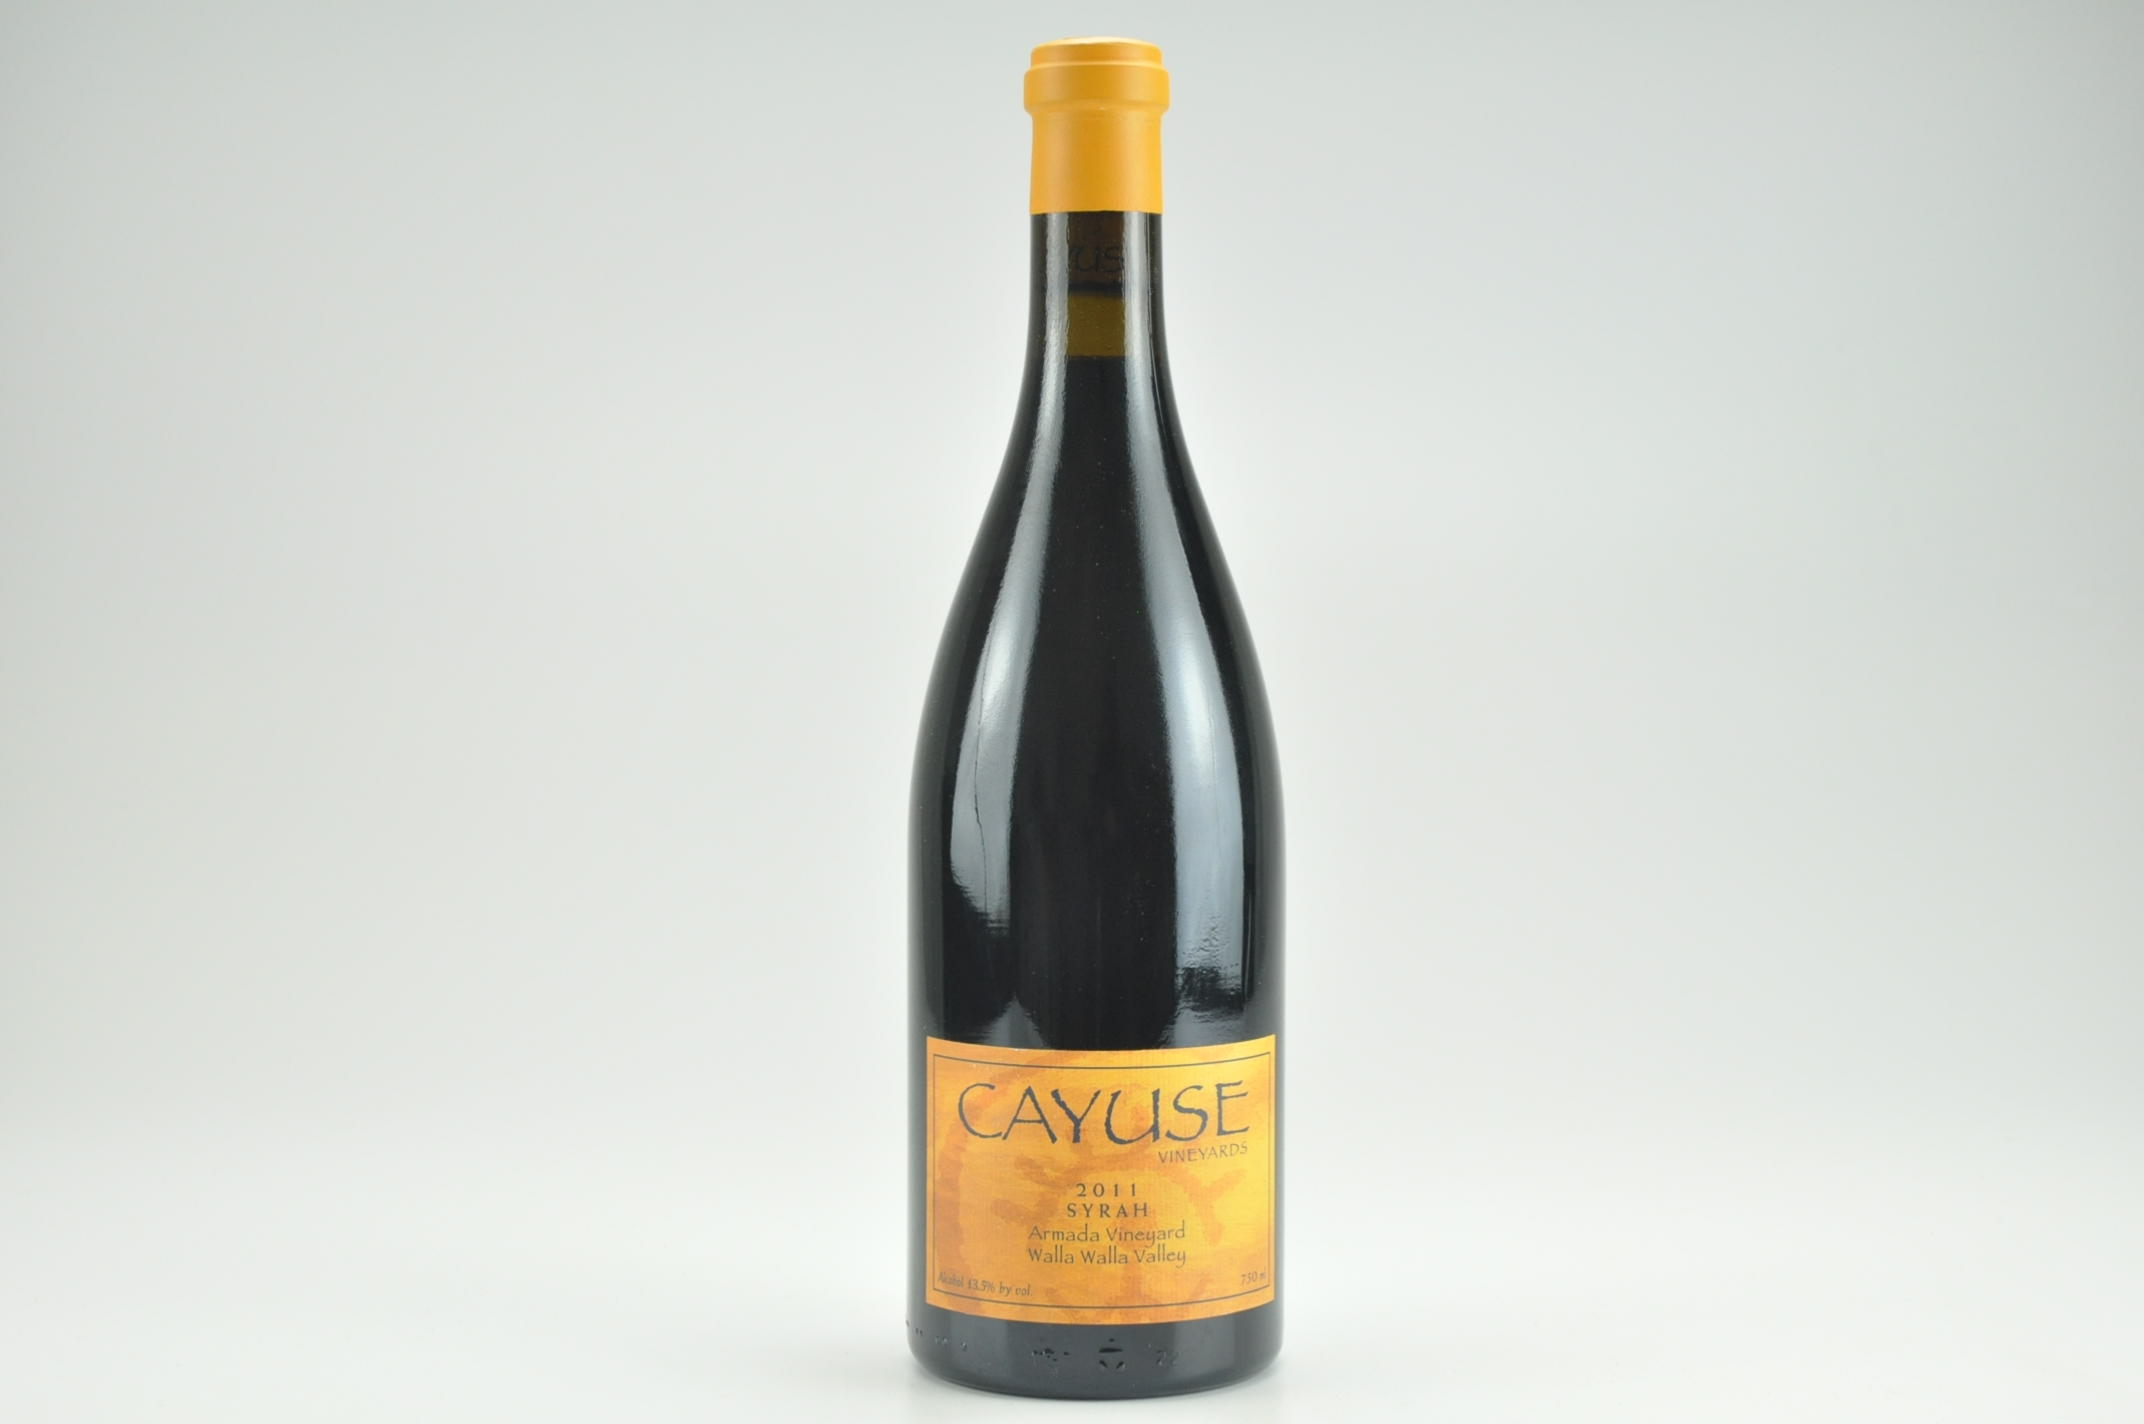 2011 Cayuse Syrah Armada Vineyard, Walla Walla Valley RP--97